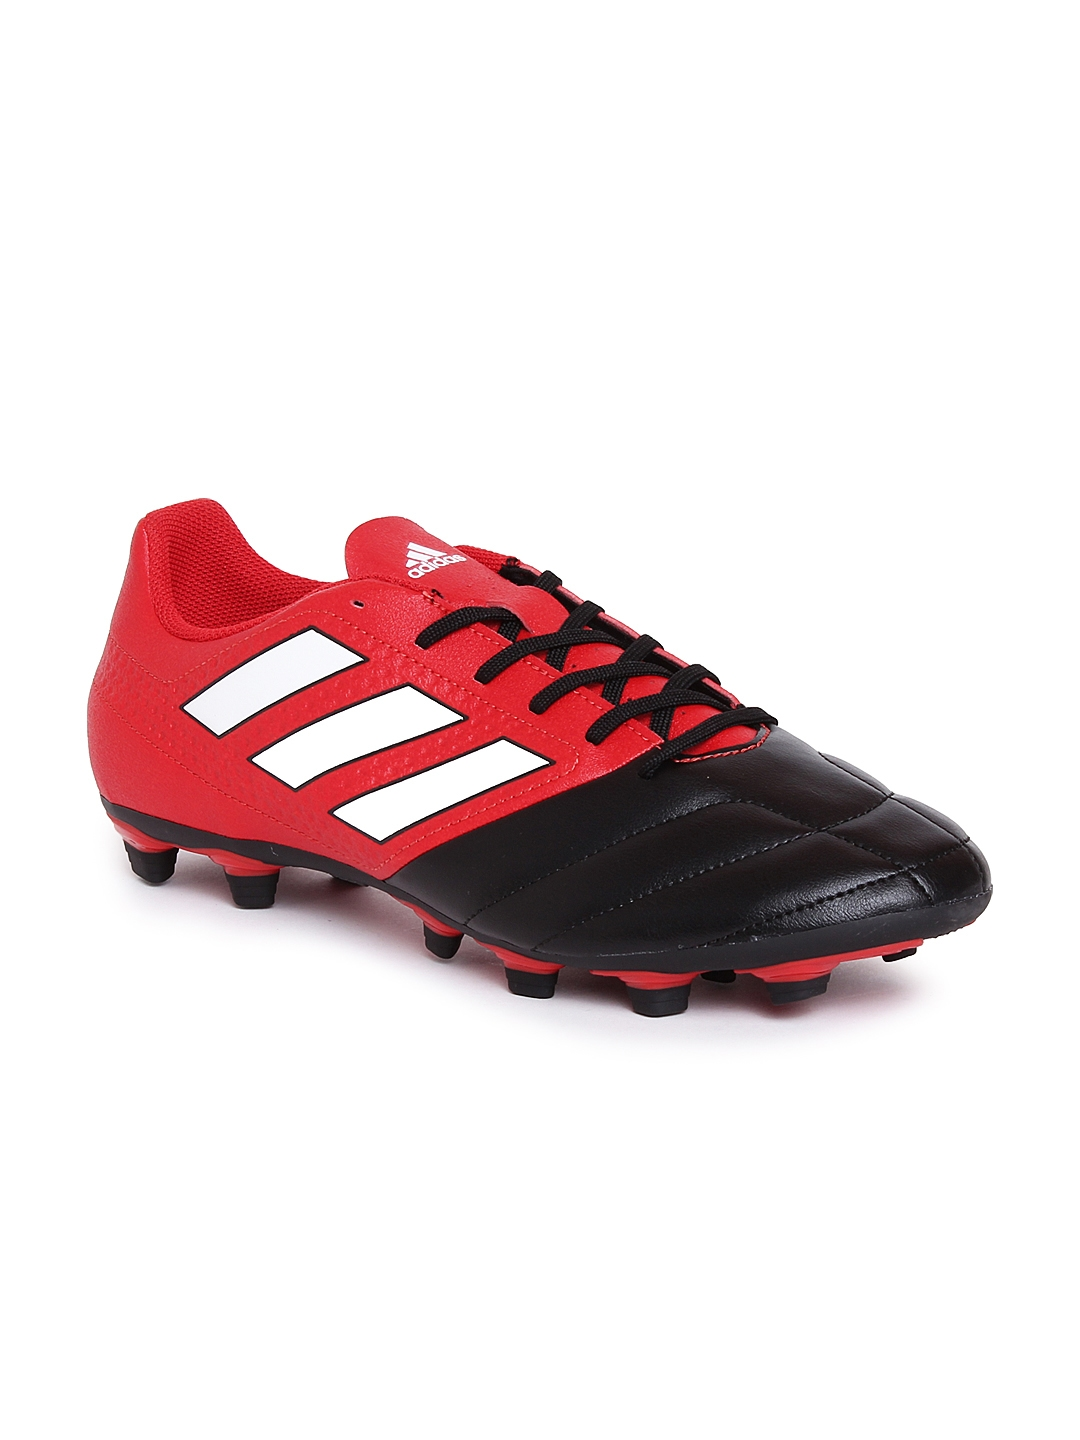 640c0ae768f4 Buy ADIDAS Men Red Ace 17.4 FXG Football Shoes - Sports Shoes for ...